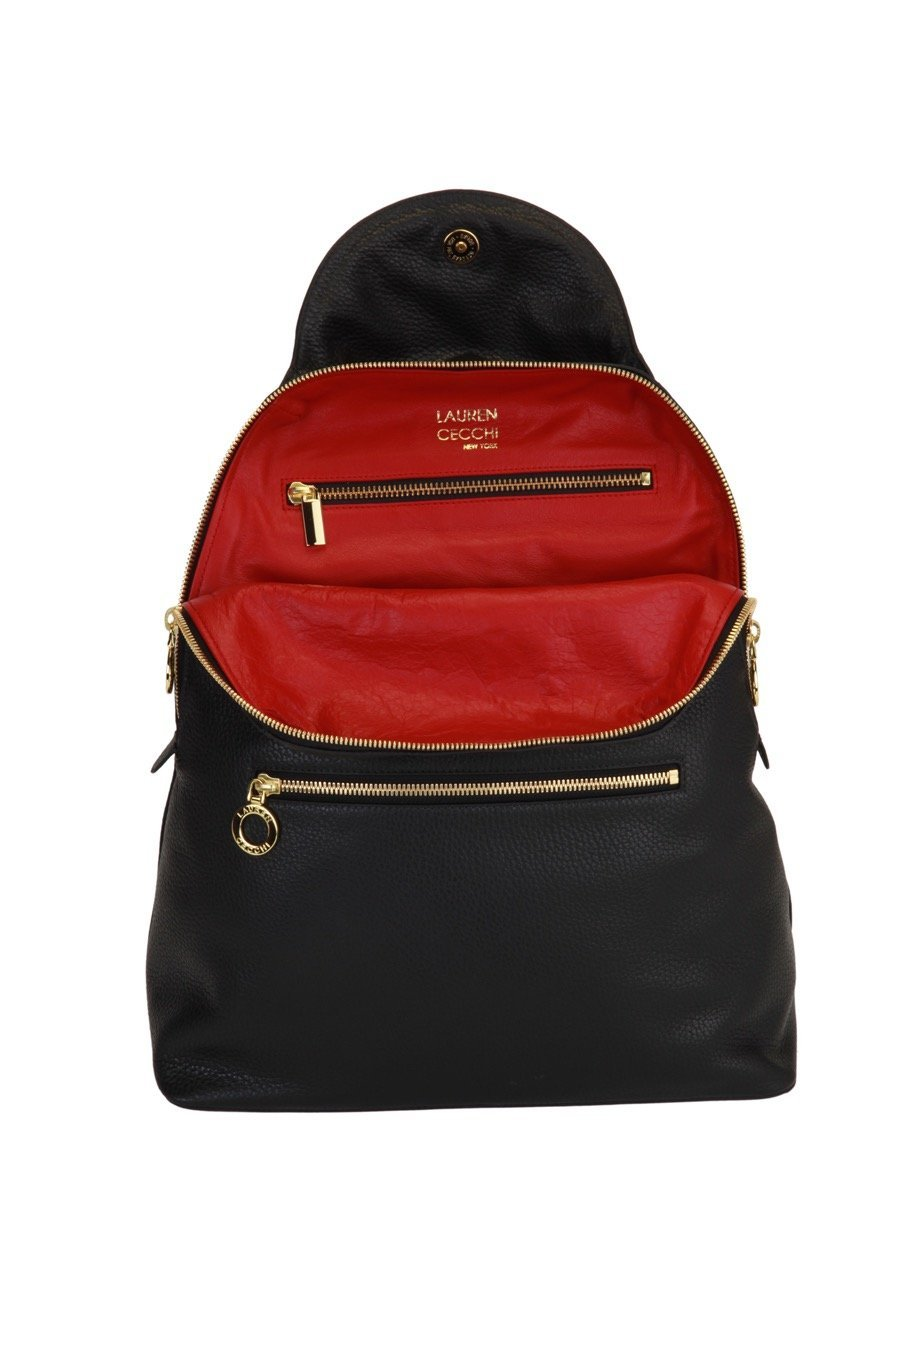 Genuine Italian Leather Bella Backpack - Lauren Cecchi New York - Lipstick Red Interior - Stylish Designer Bag With Adjustable Shoulder Straps by Lauren Cecchi New York (Image #2)